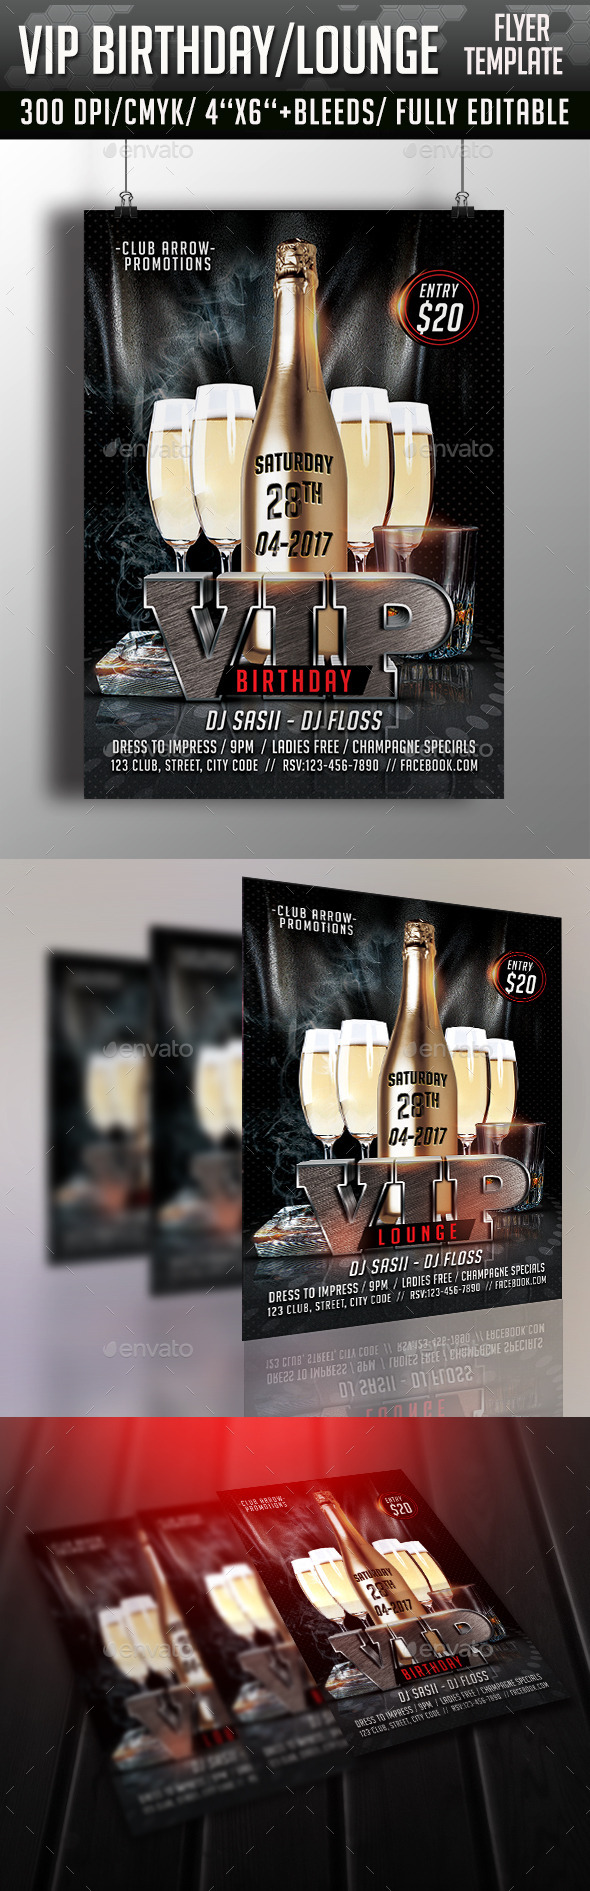 GraphicRiver VIP Birthday Lounge Flyer 11215792